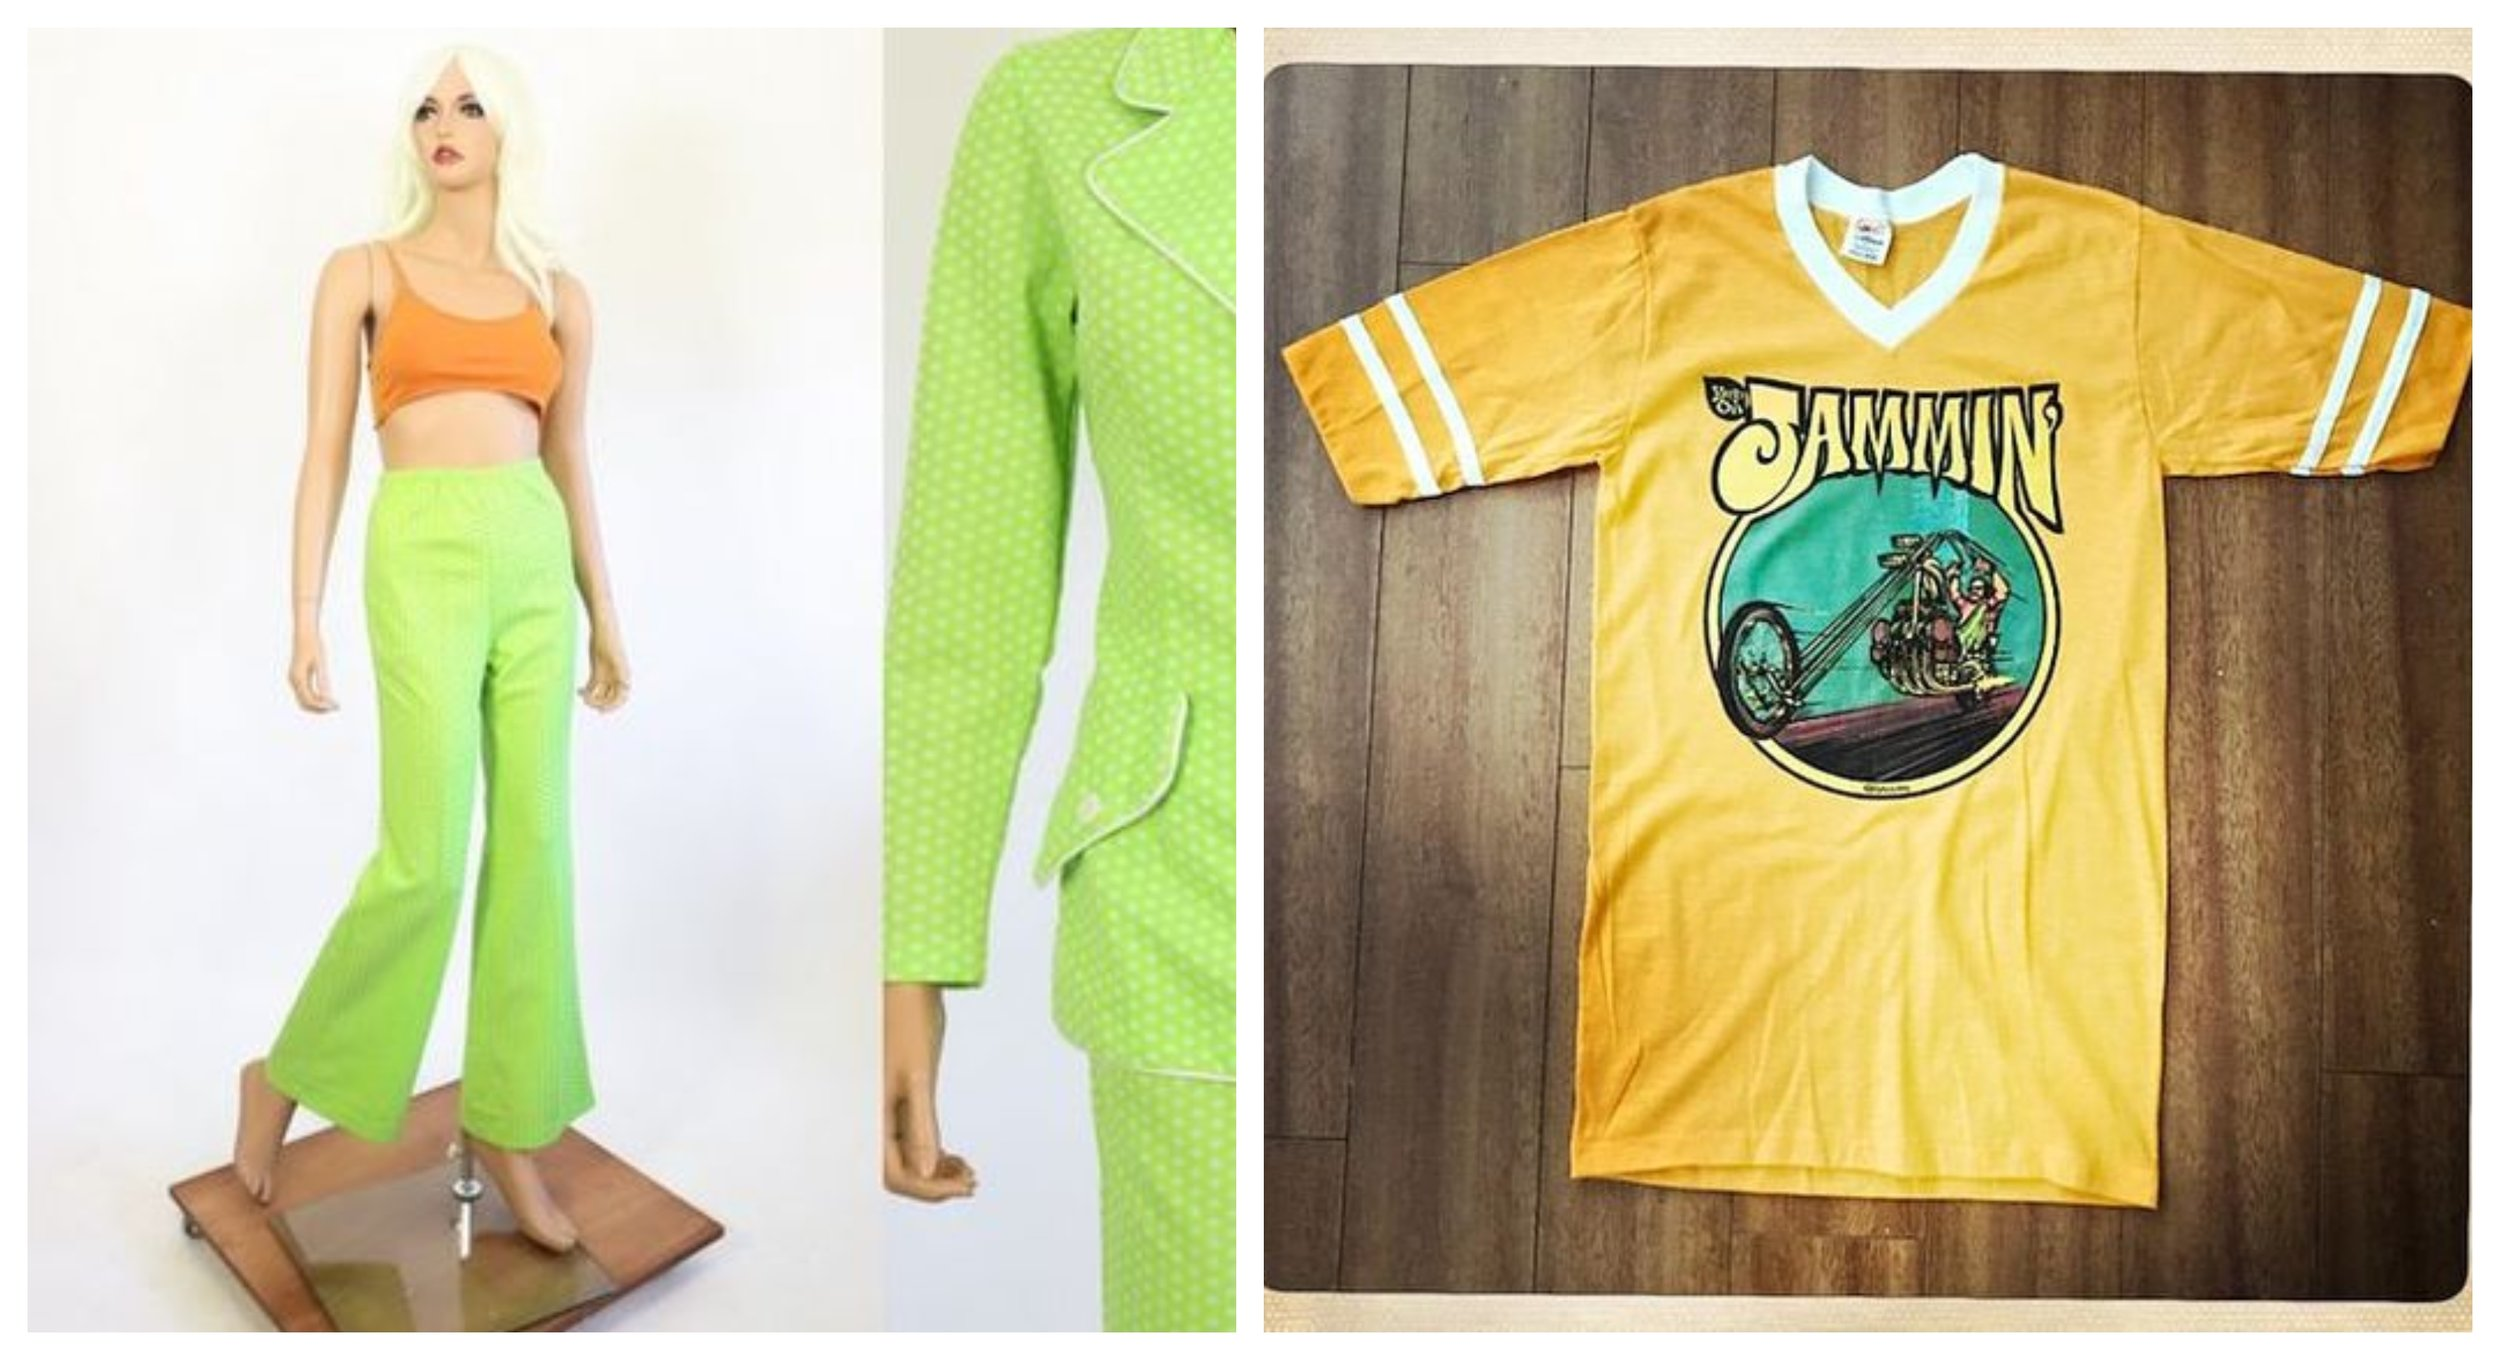 70s Finds.jpg